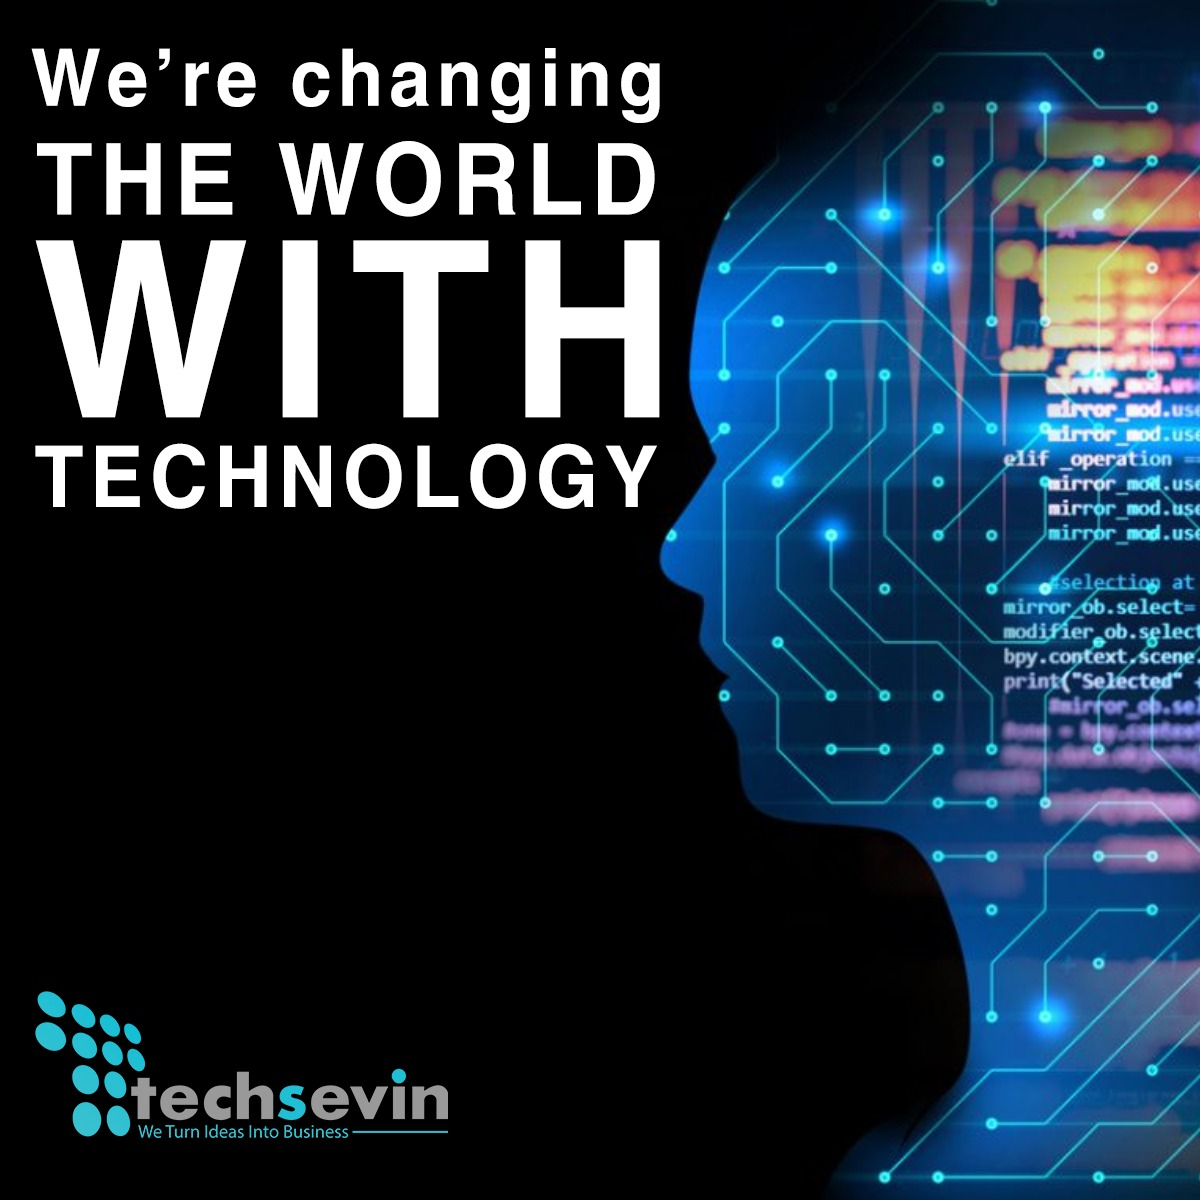 """We're changing the world with technology""  #TechSevin #corporatelife #corporatehumor #ceolife  #technologyrocks #technochangedmylife #tech #world #technoworldpic.twitter.com/91fLARpl94"